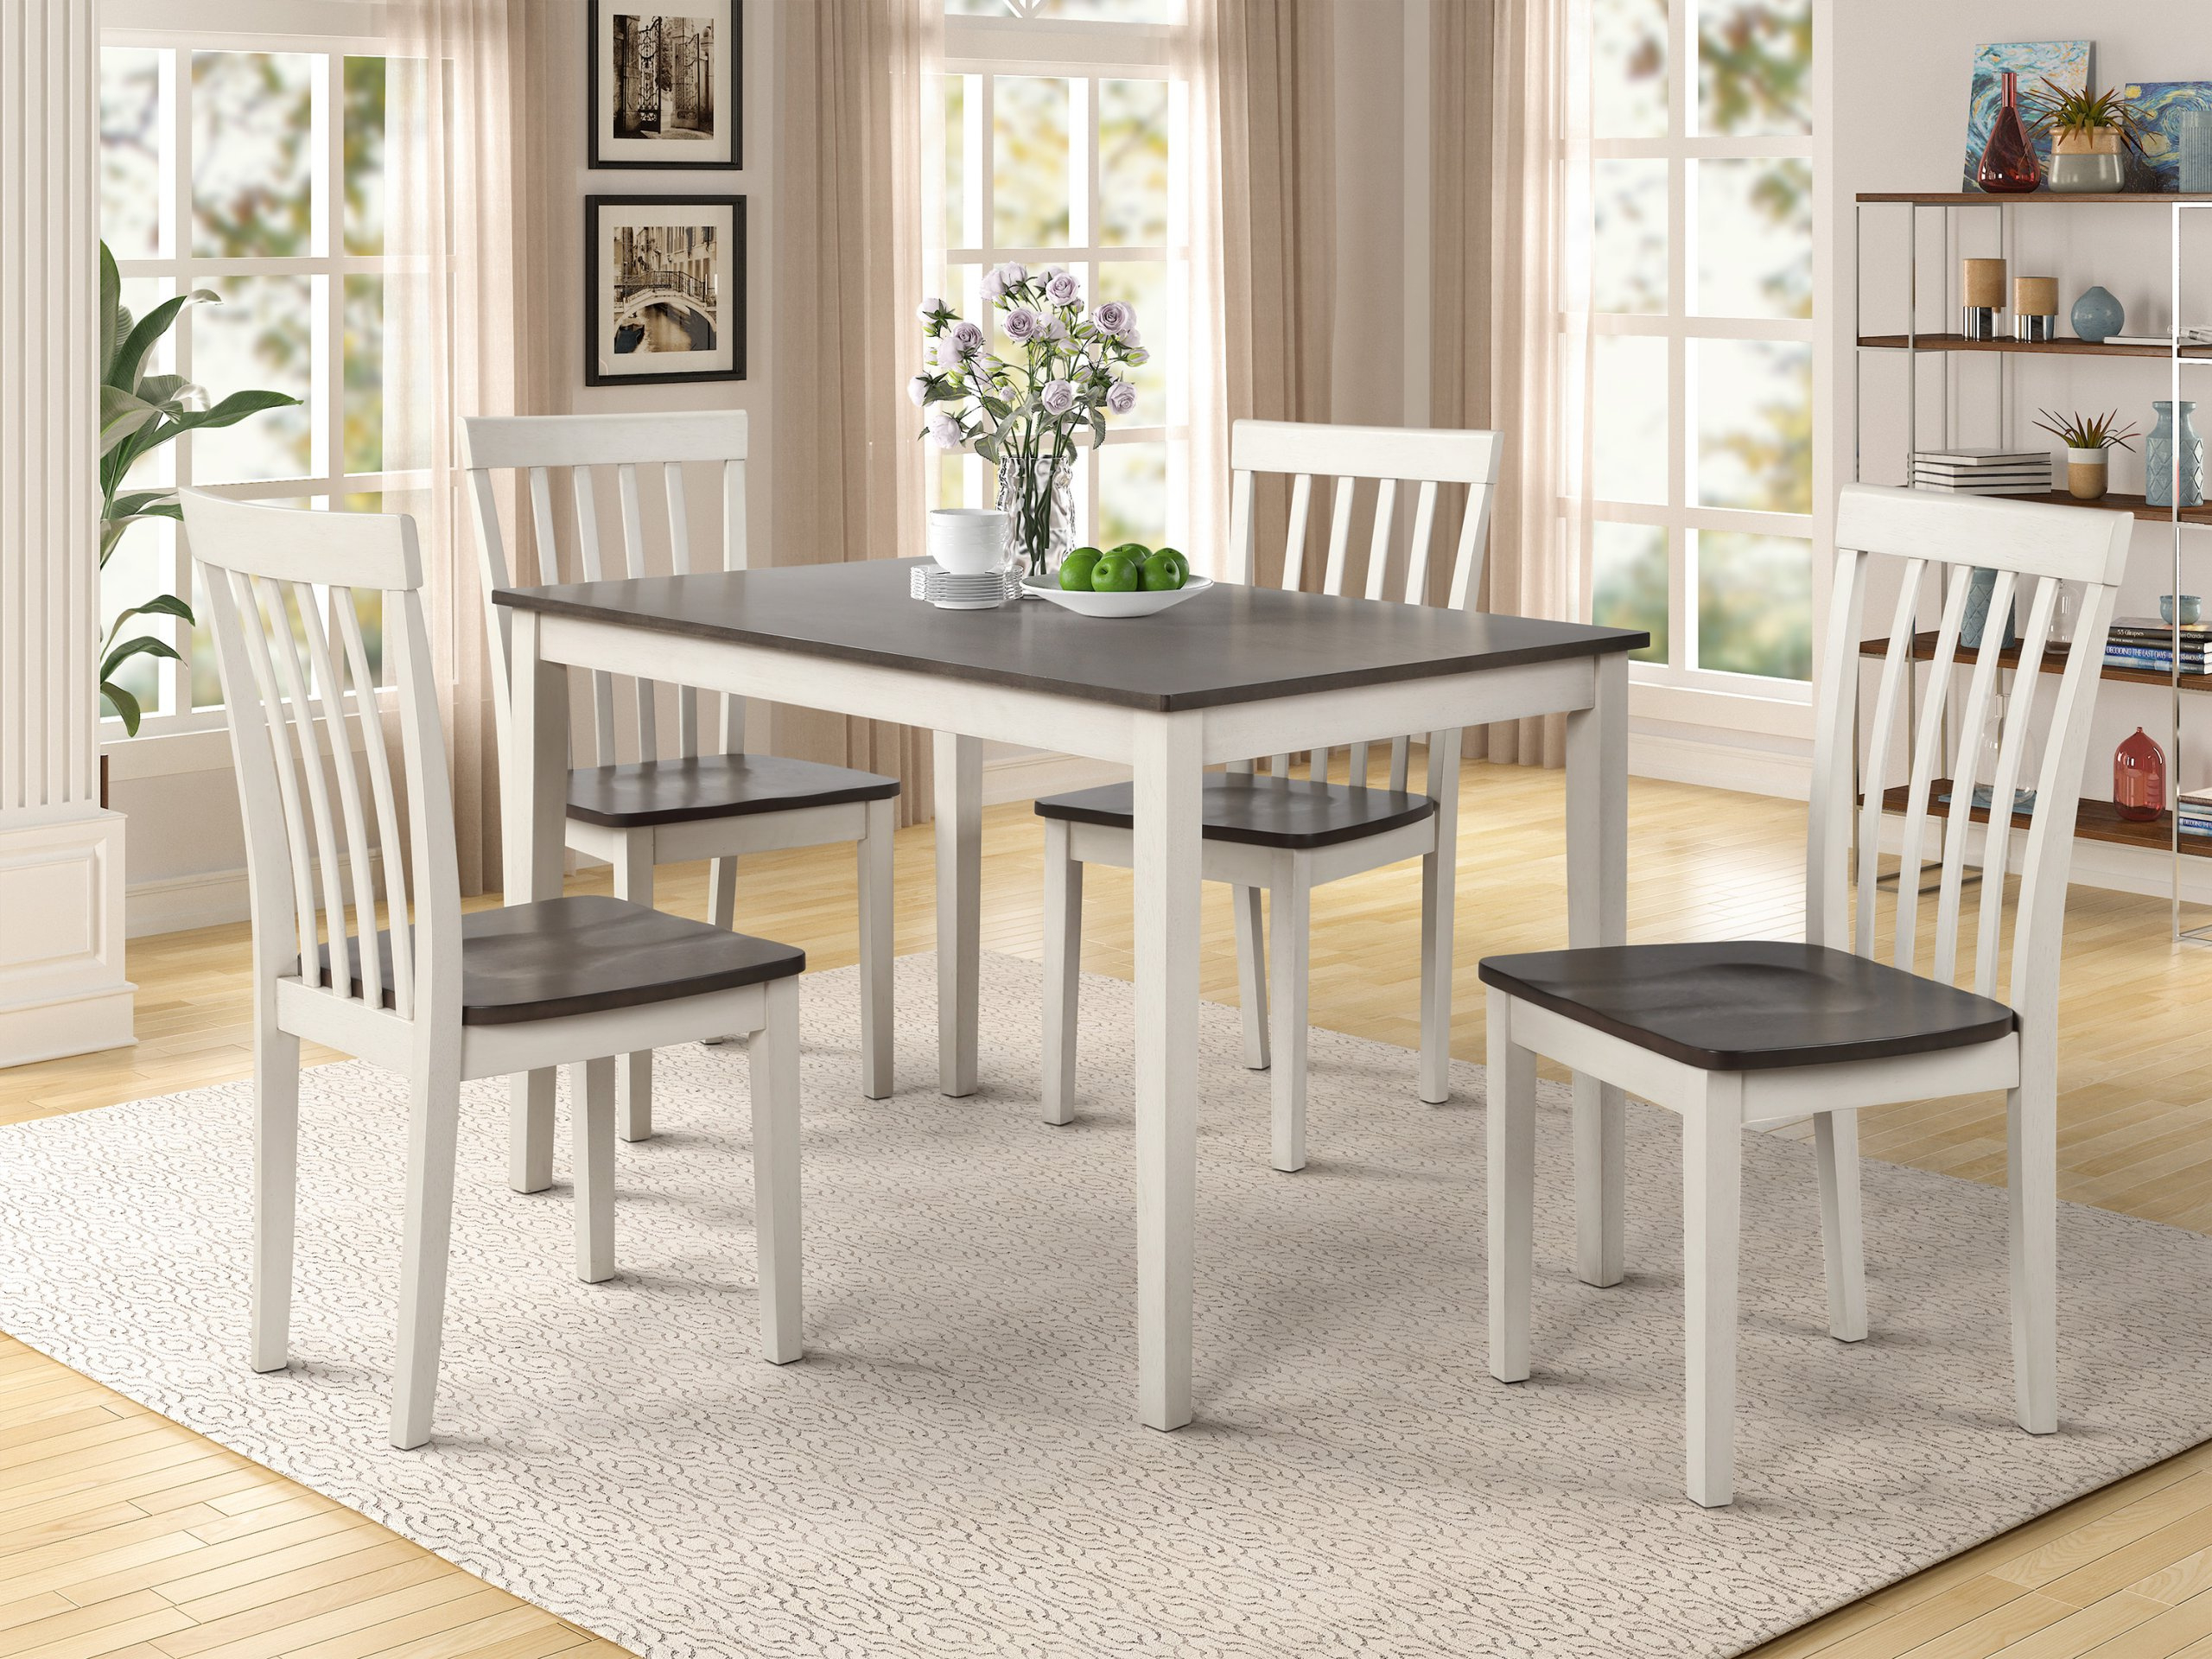 Best And Newest Distressed Grey Finish Wood Classic Design Dining Tables Inside Furniture Clearance Center (View 29 of 30)